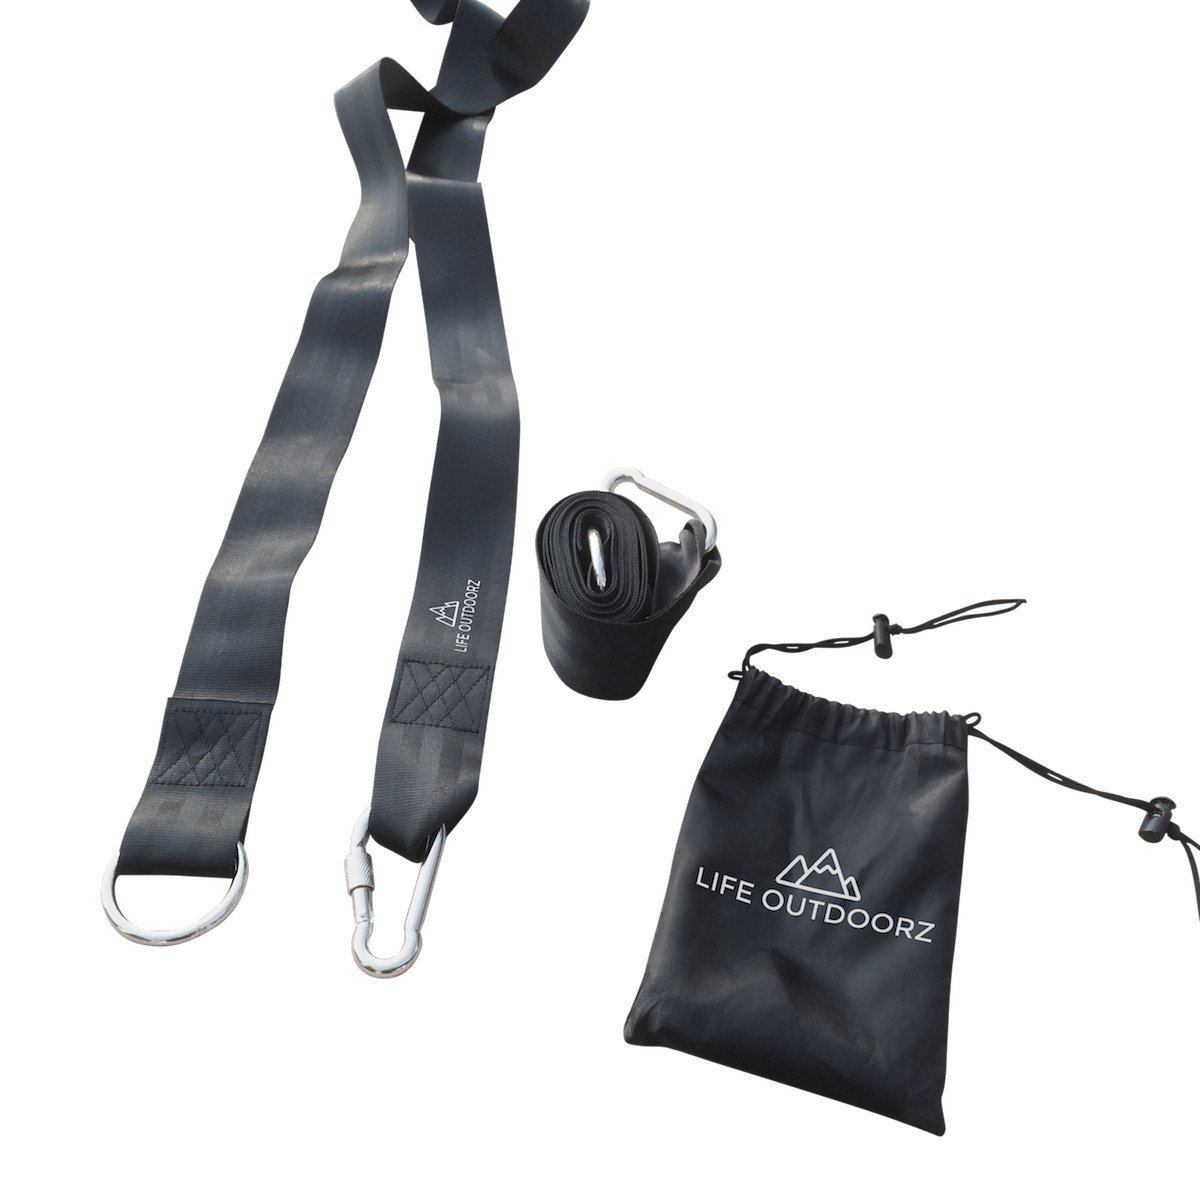 Jet Black Heavy Duty Polyester Anti Stretch Hammock Tree Straps - Holds up to 2204 Lbs - Quick Setup - Pair of Extra Long Straps with Black Nickle Plated Iron Carabineers + Instructions + Carry Bag by LIFE OUTDOORZ